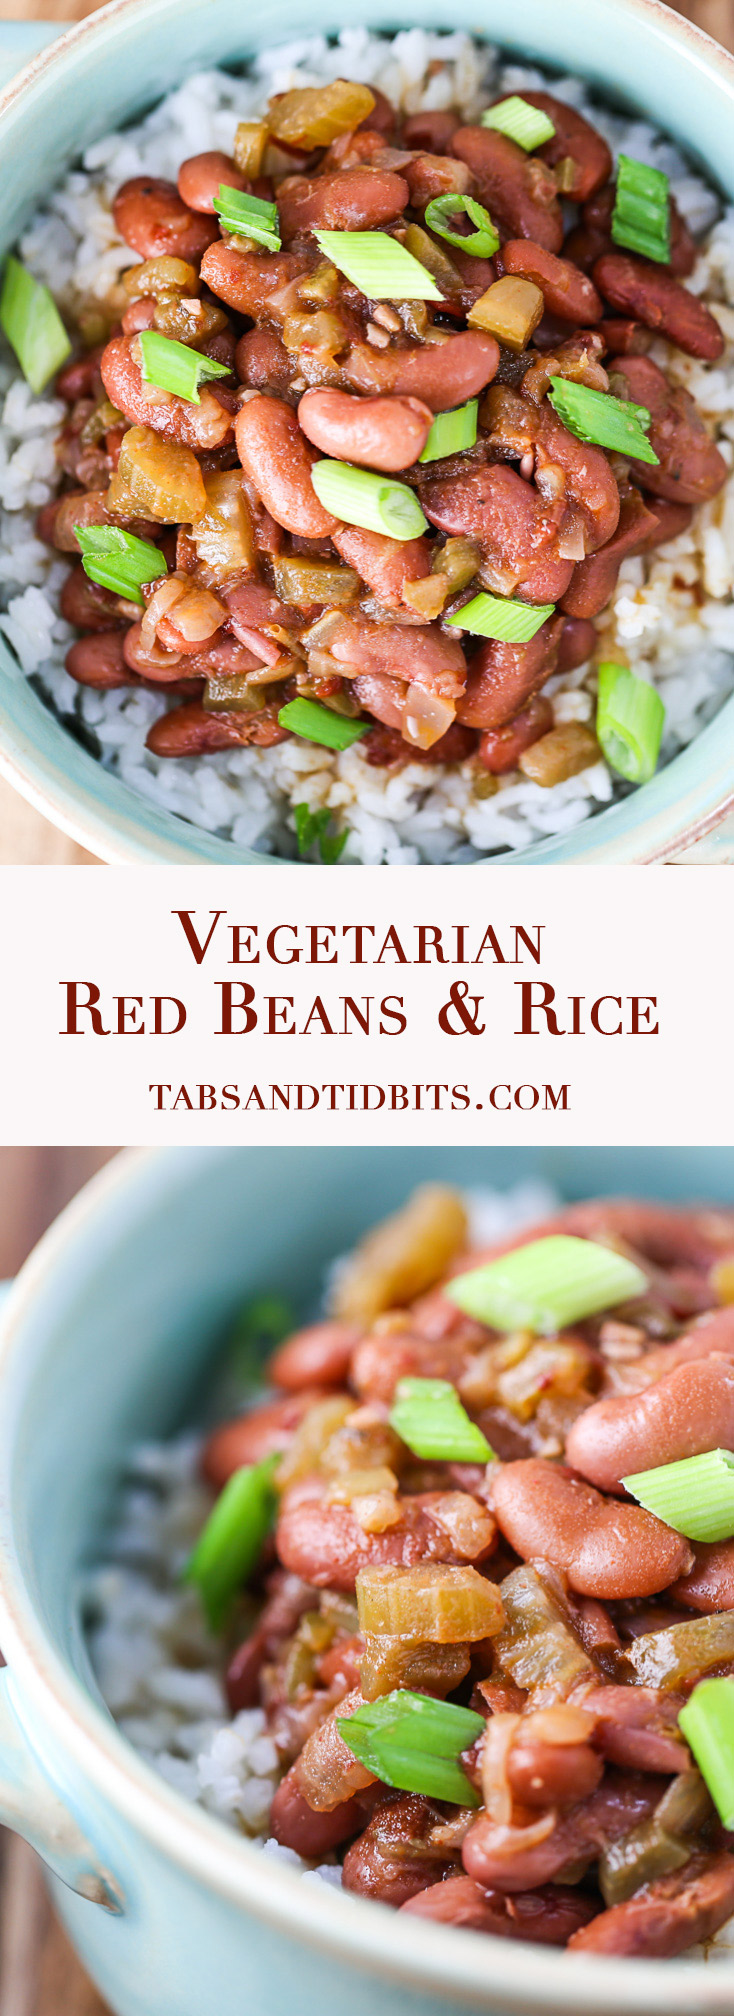 Vegetarian Red Beans & Rice - A meatless version of red beans and rice that is filled with spices, smokiness, and flavor!